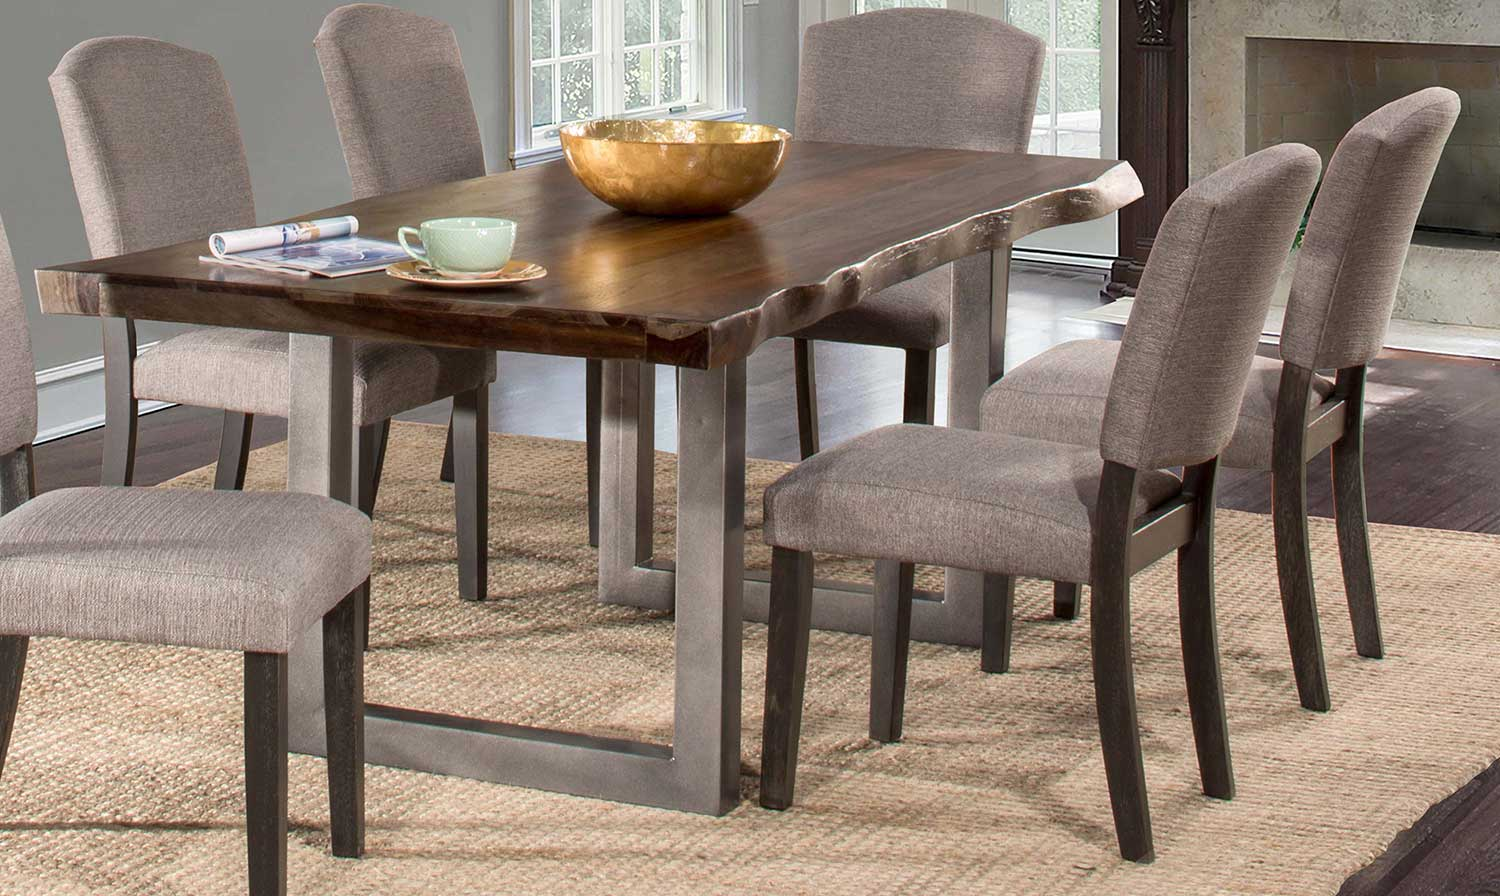 Hillsdale Emerson 5-Piece Rectangle Dining Set - Gray Sheesham/Gray Powder